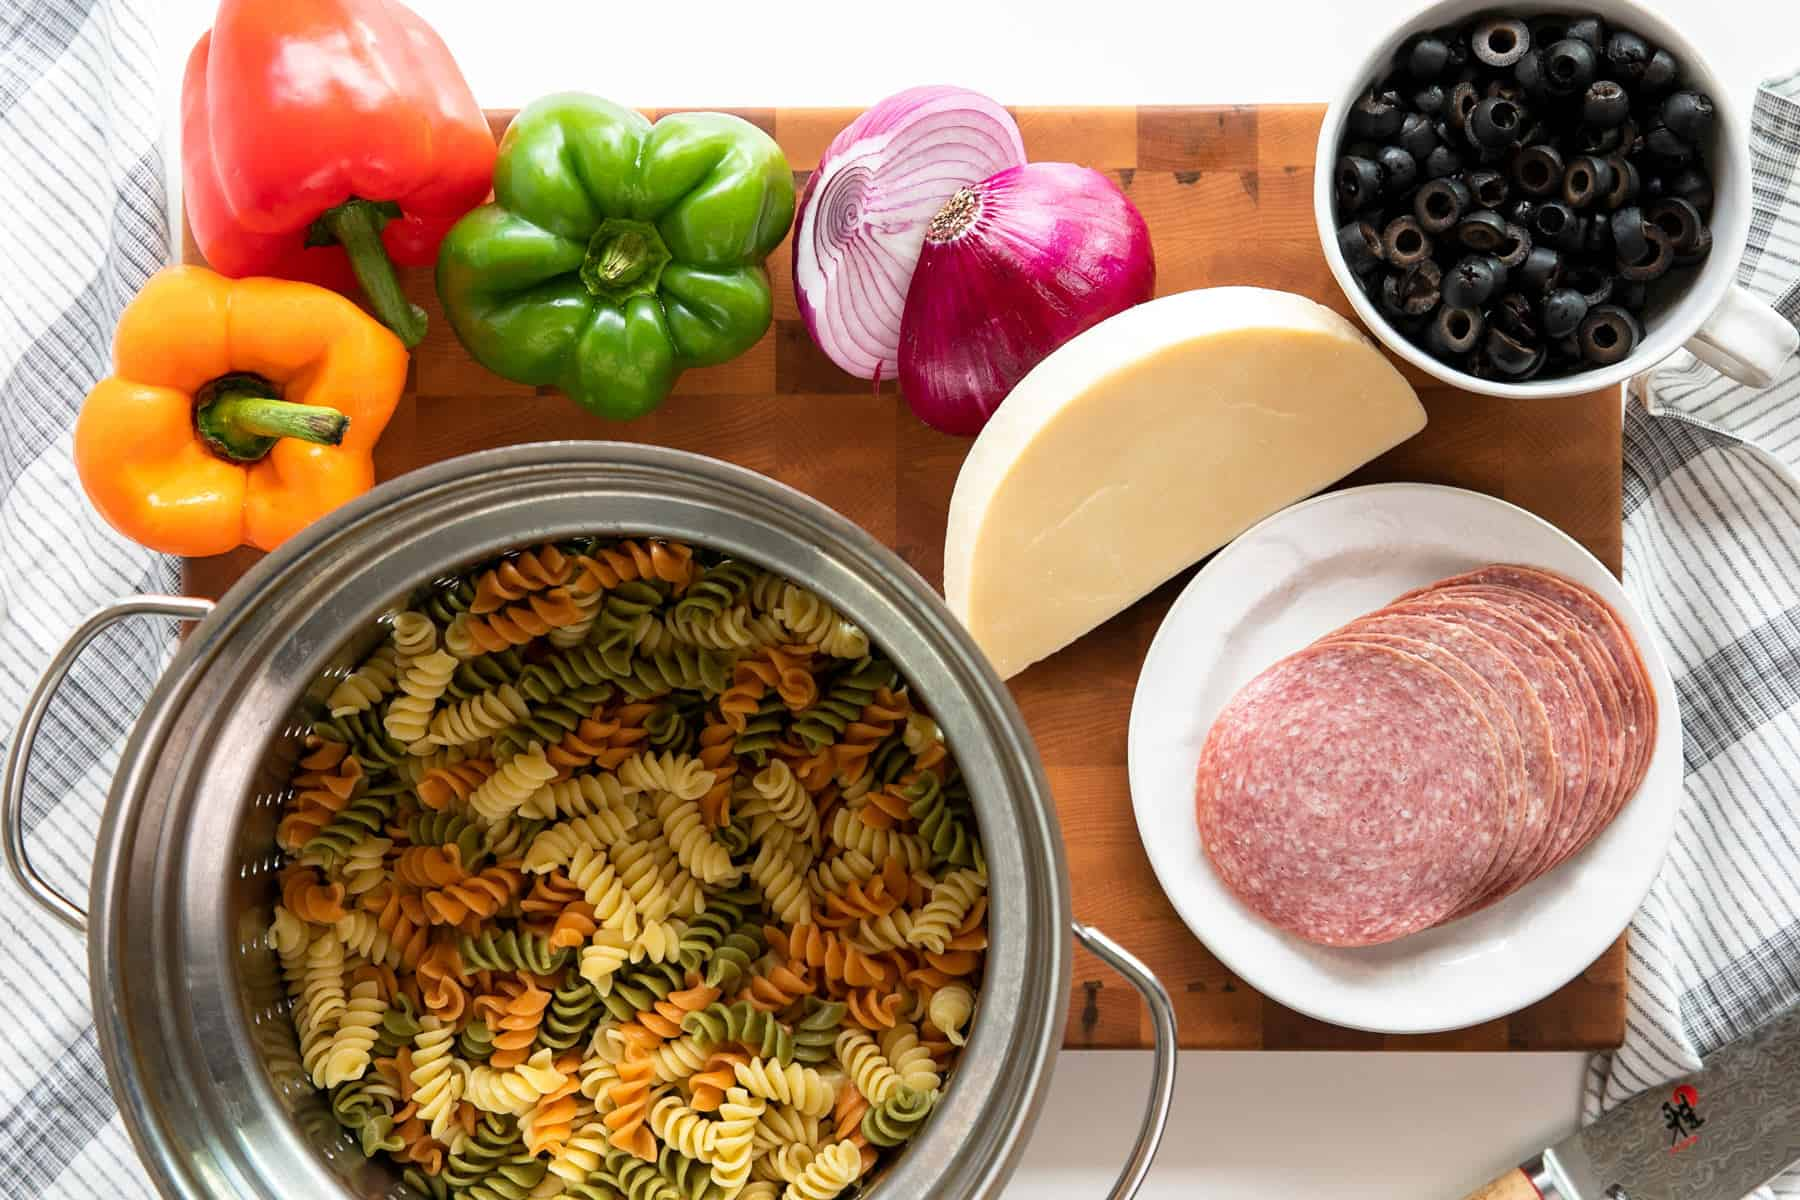 Pasta Salad ingredients: red pepper, orange bell pepper, green bell pepper, provolone cheese block, salami, red onion, sliced black olives and tri-color rotini pasta